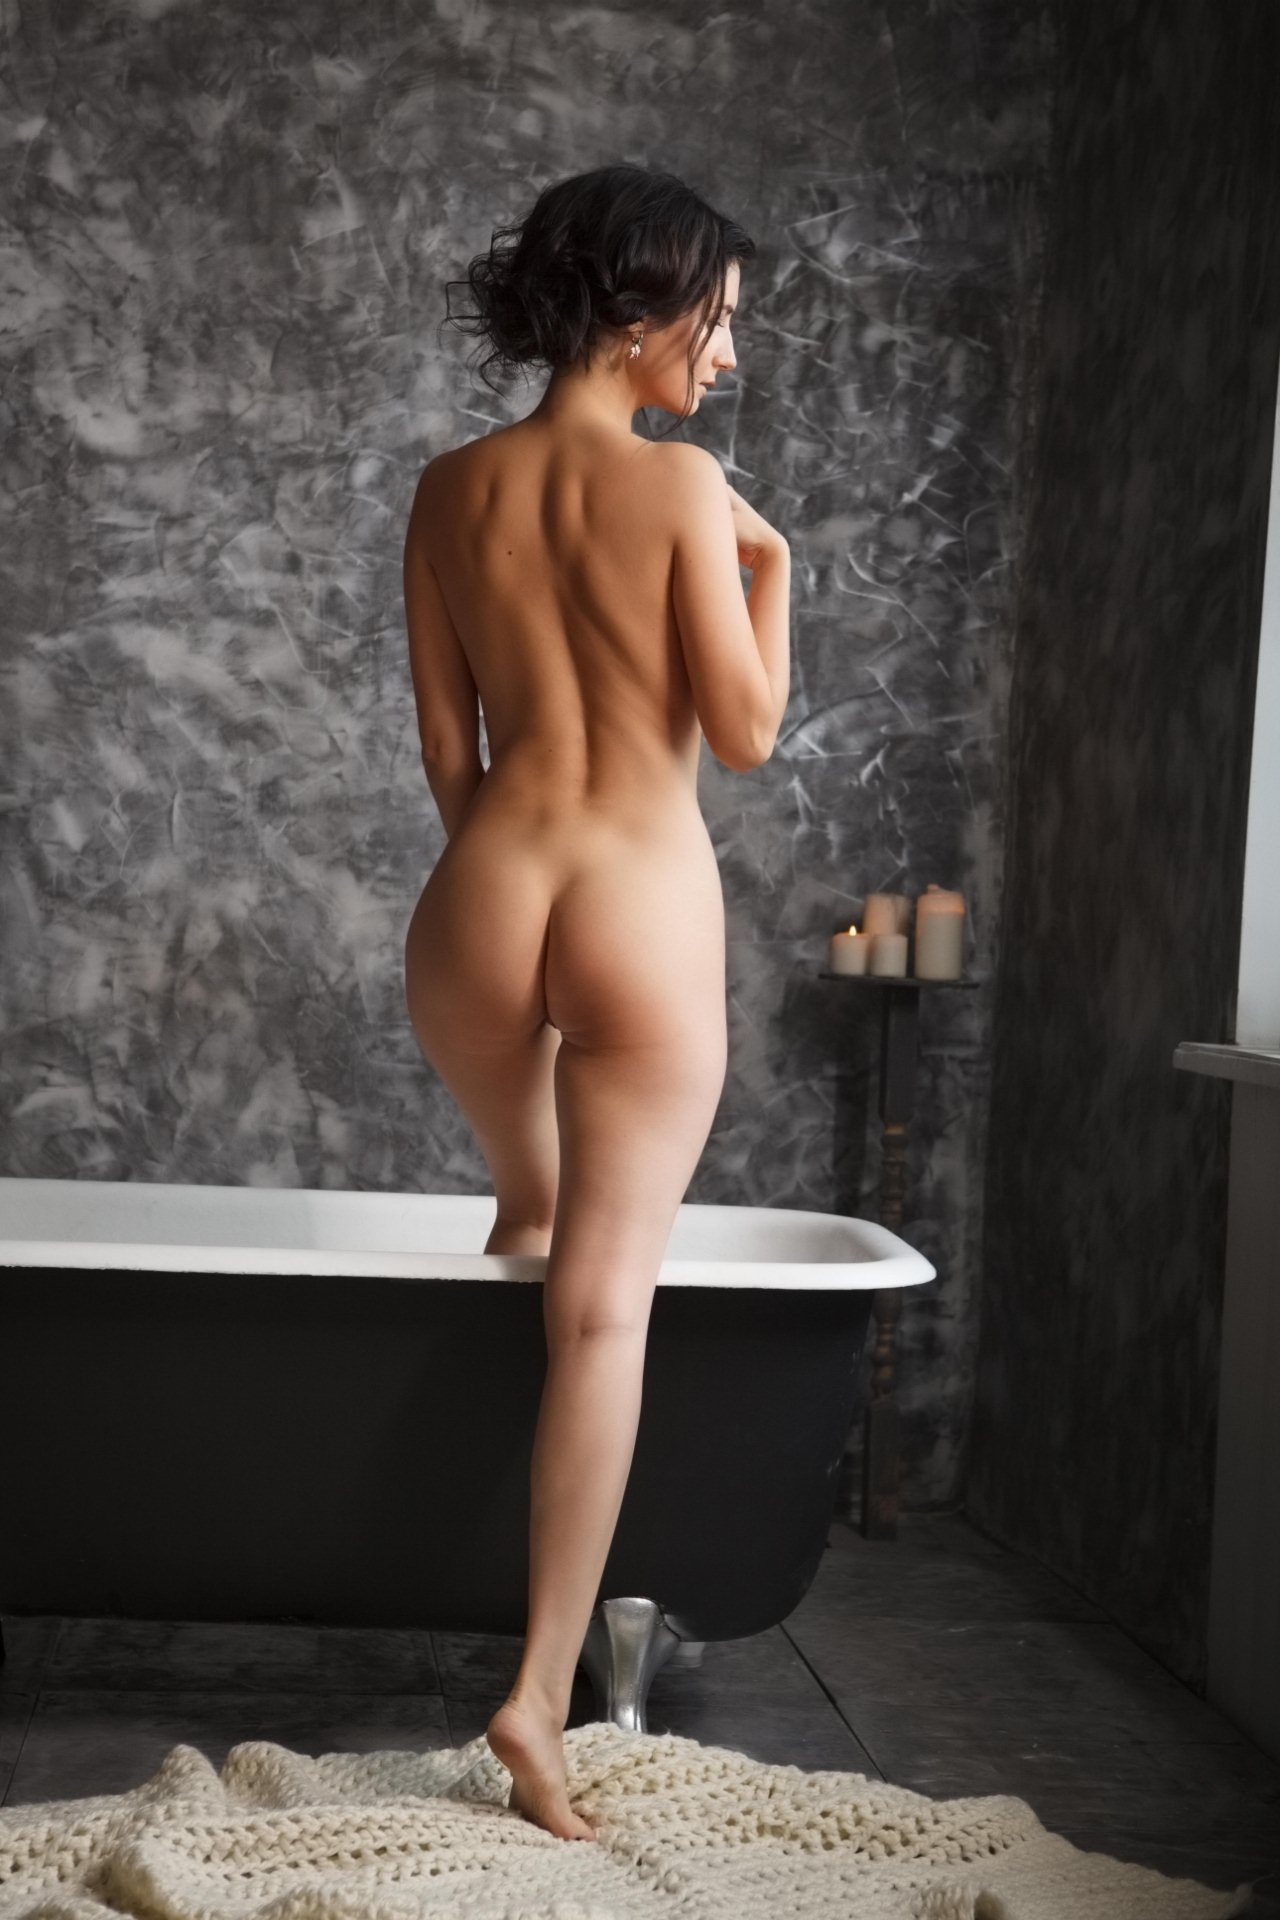 naked-girls-taking-bath-boobs-wet-mix-vol4-04